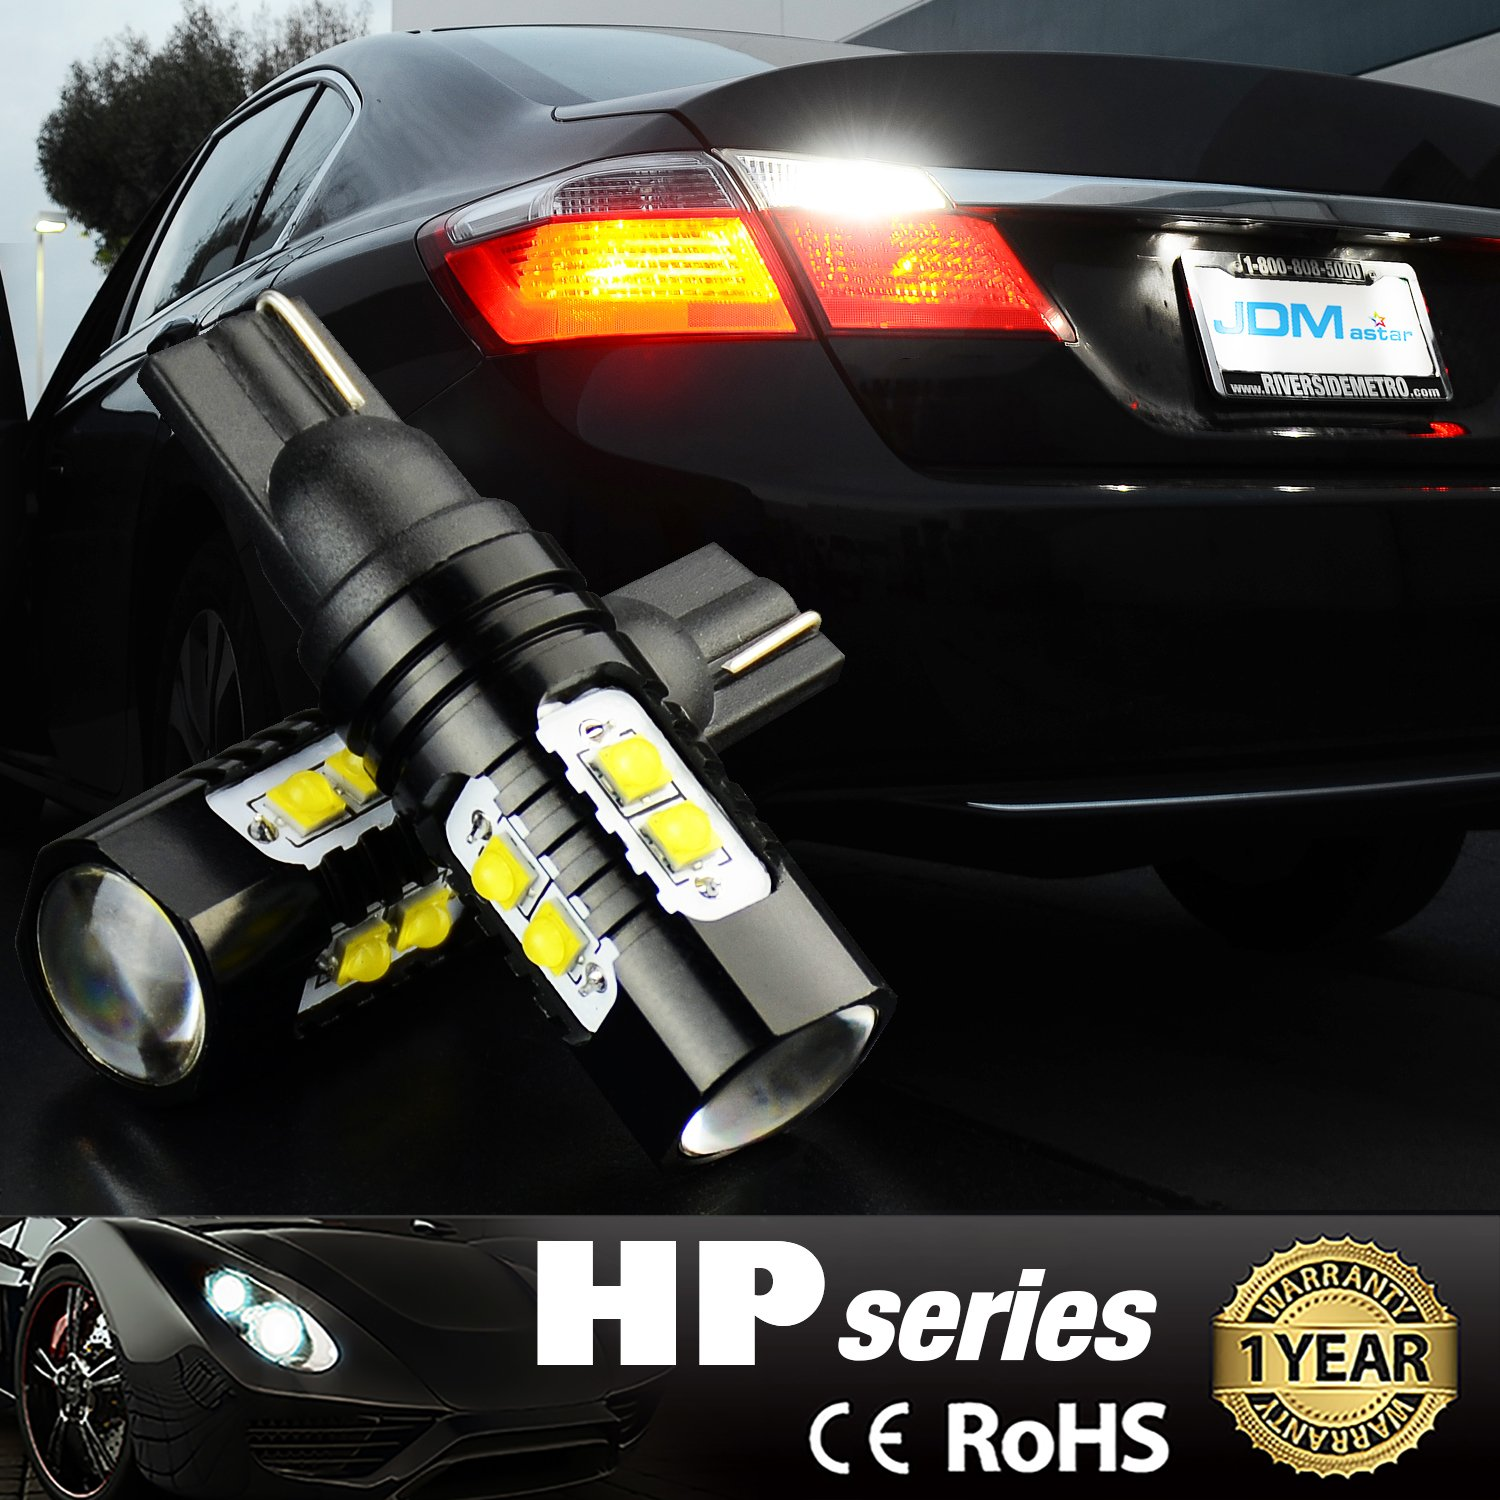 JDM ASTAR Extremely Bright Max 50W High Power 912 921 LED Bulb For Backup Reverse Lights Xenon White